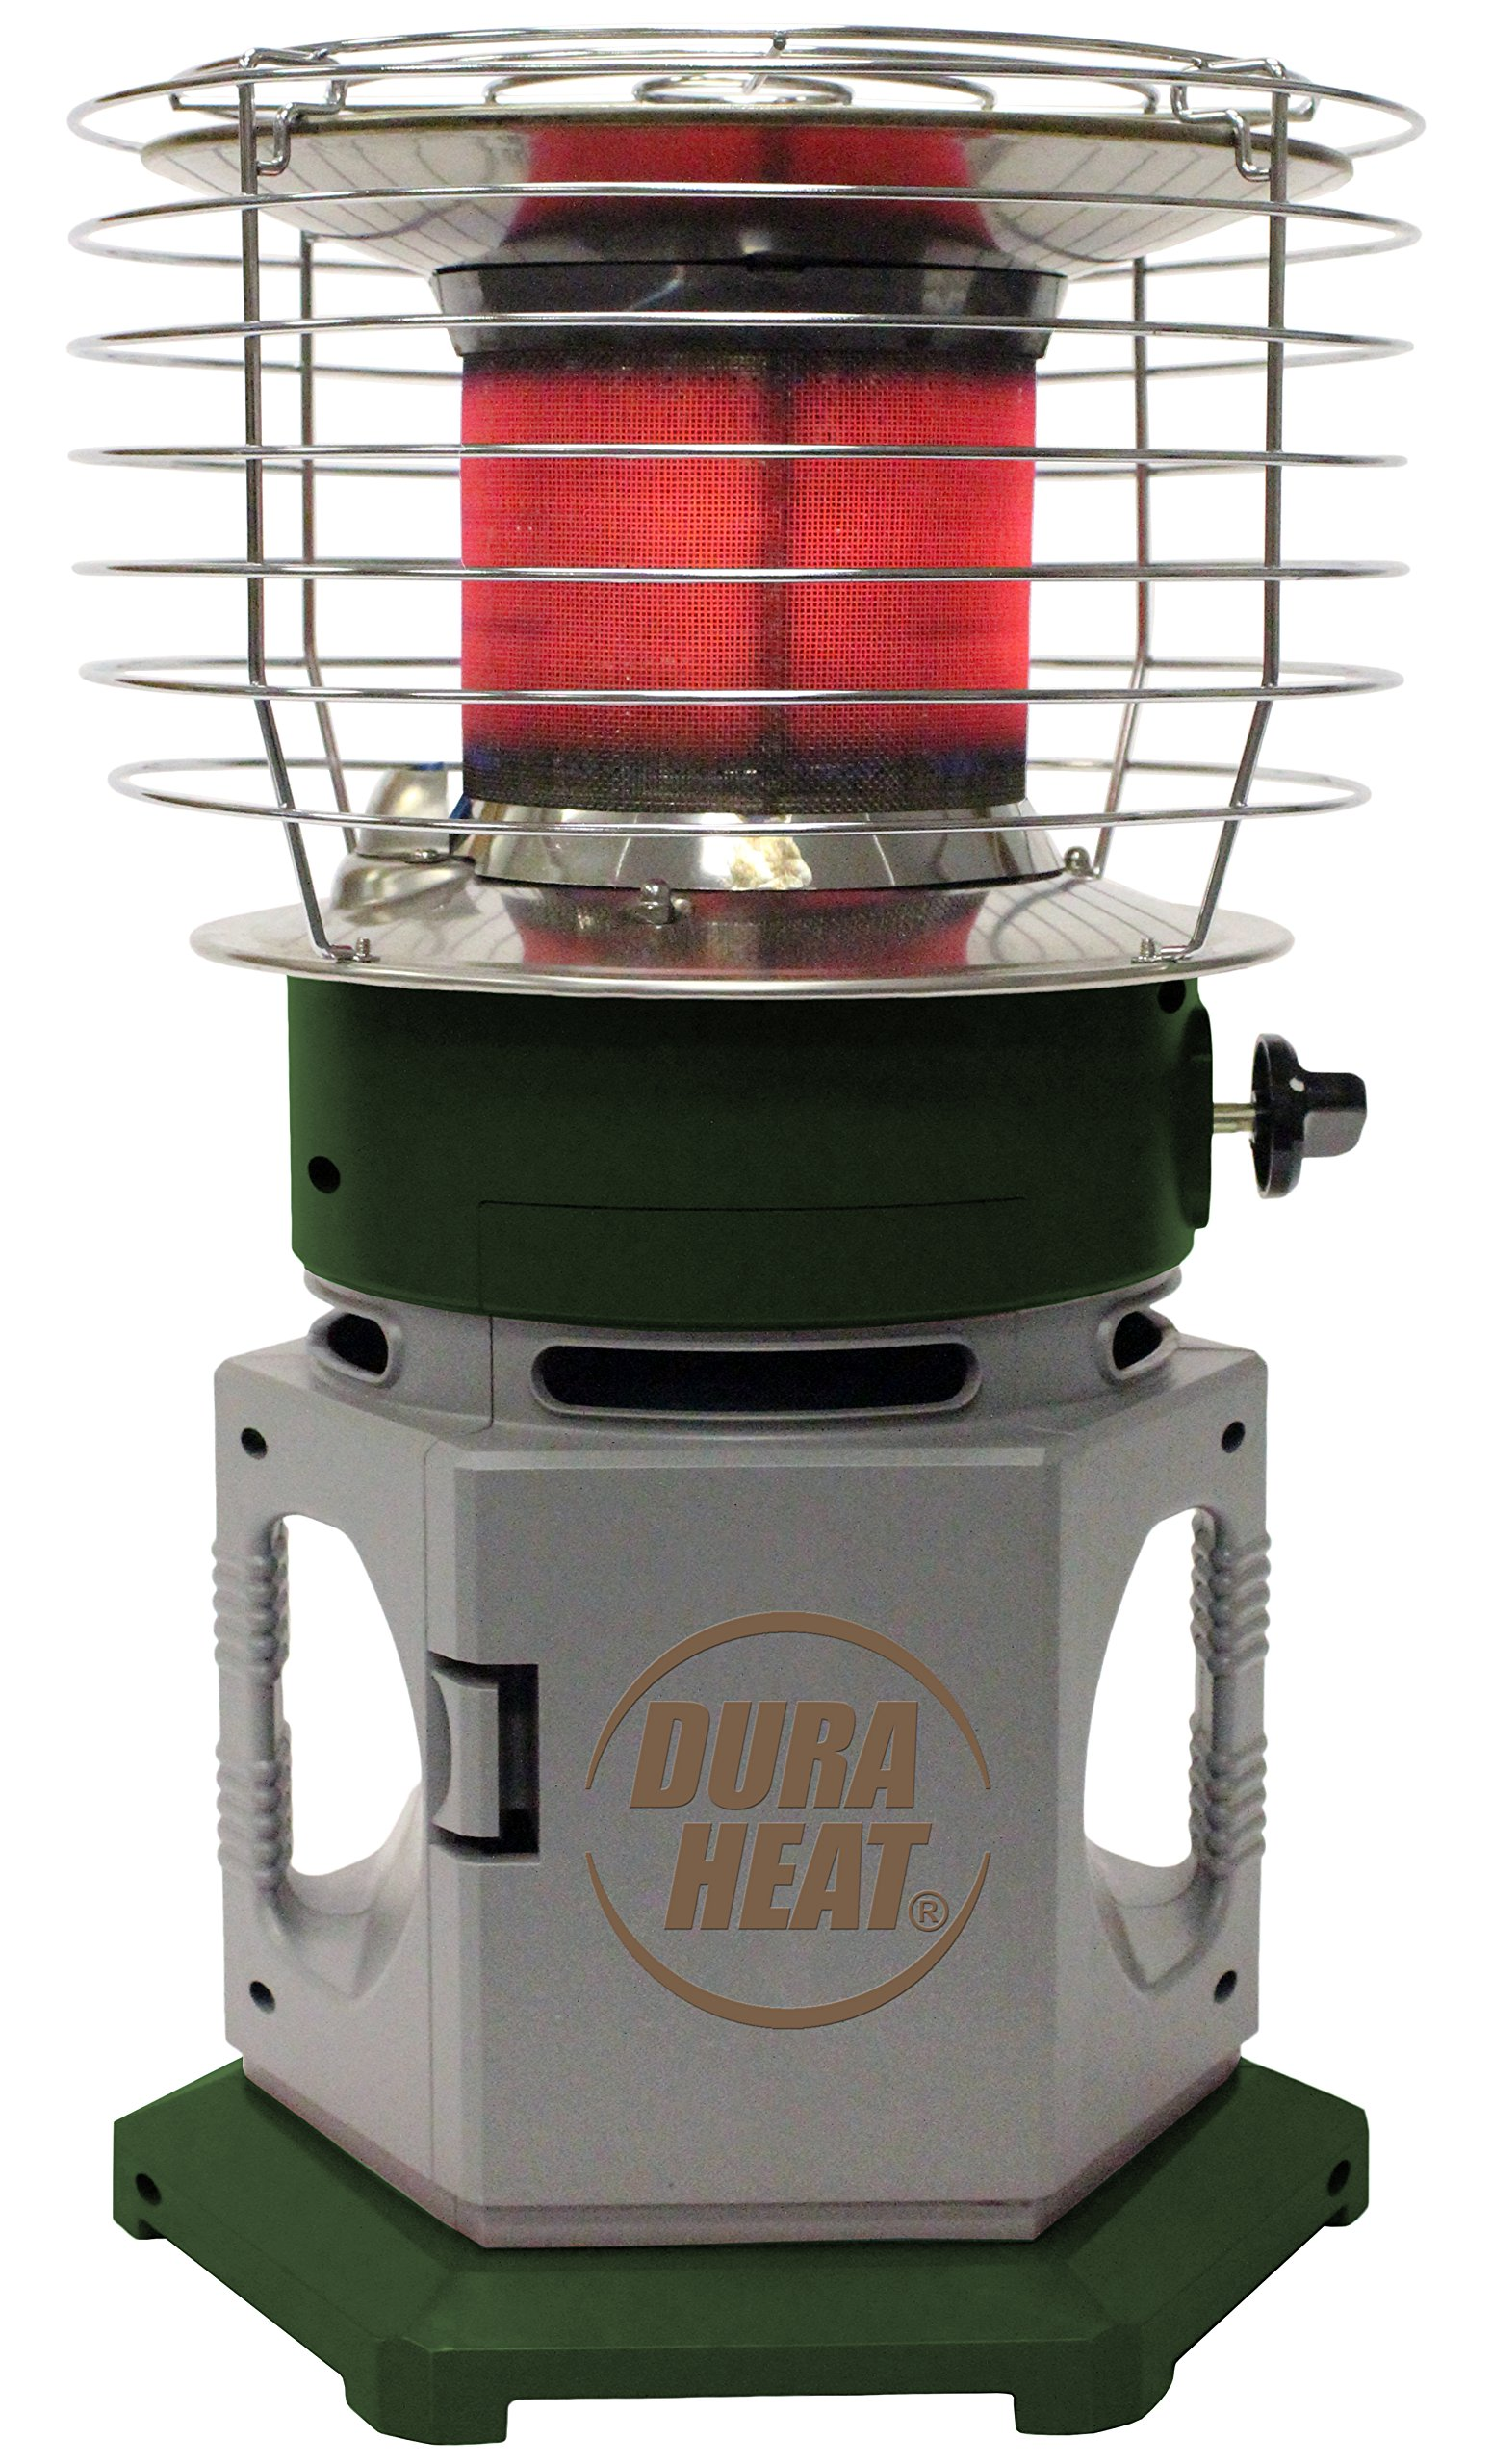 Dura Heat 360 Degree Instant Radiant Double Tank Portable Indoor Outdoor Propane Heater, 25,000 BTU, Grey/Green by Dura Heat